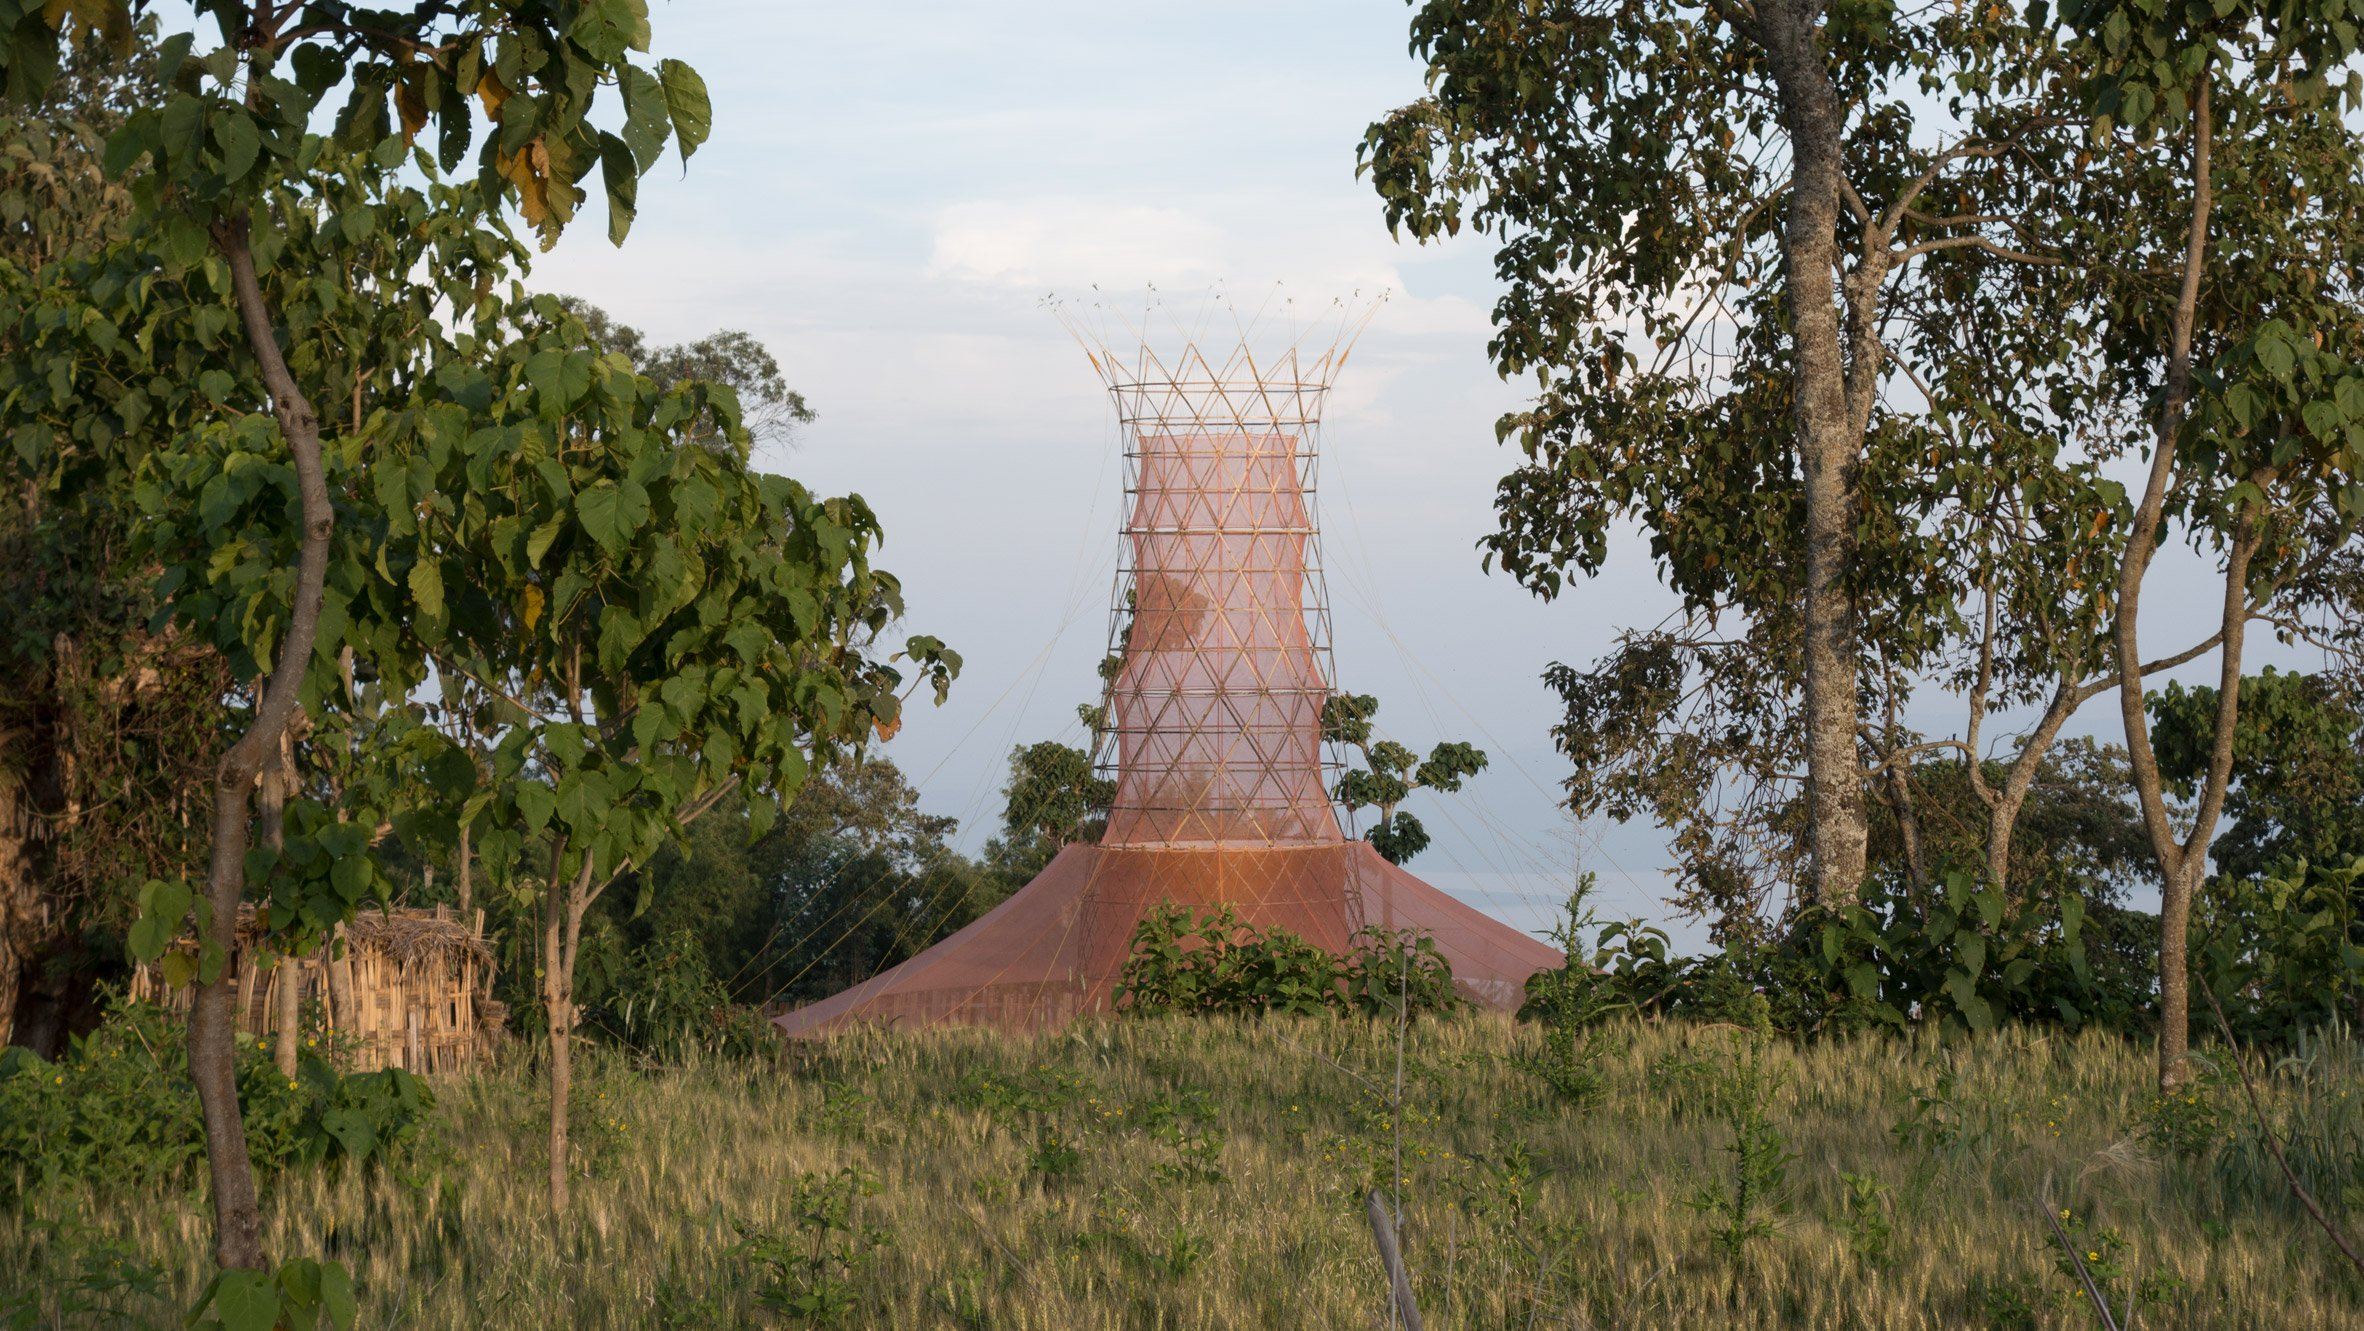 Warka Water's water-collecting tower